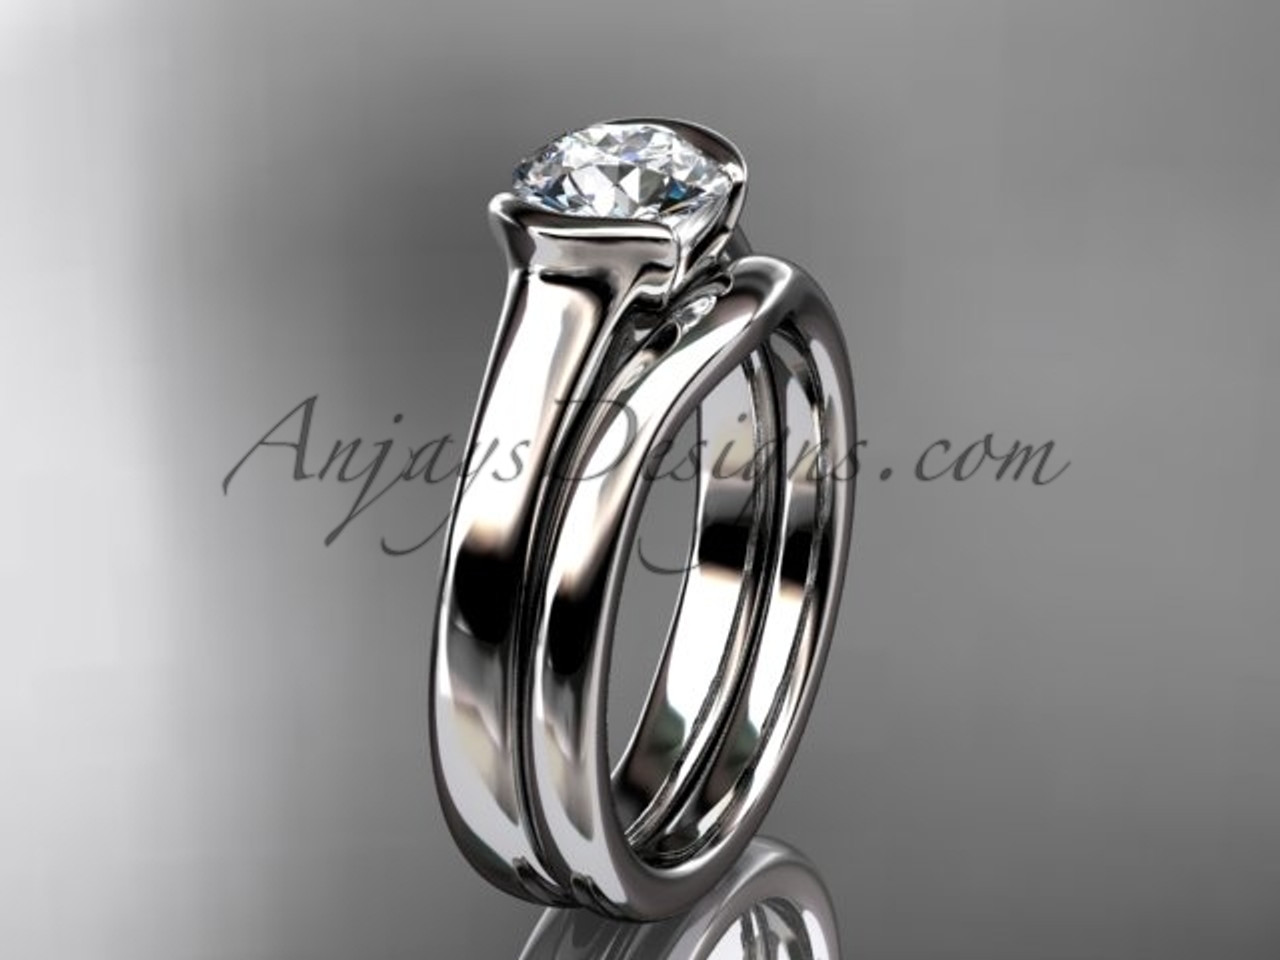 jewelry item in rings wedding pair couple women silver rhinestone of s charm day platinum for men from ring bands heart valentine love